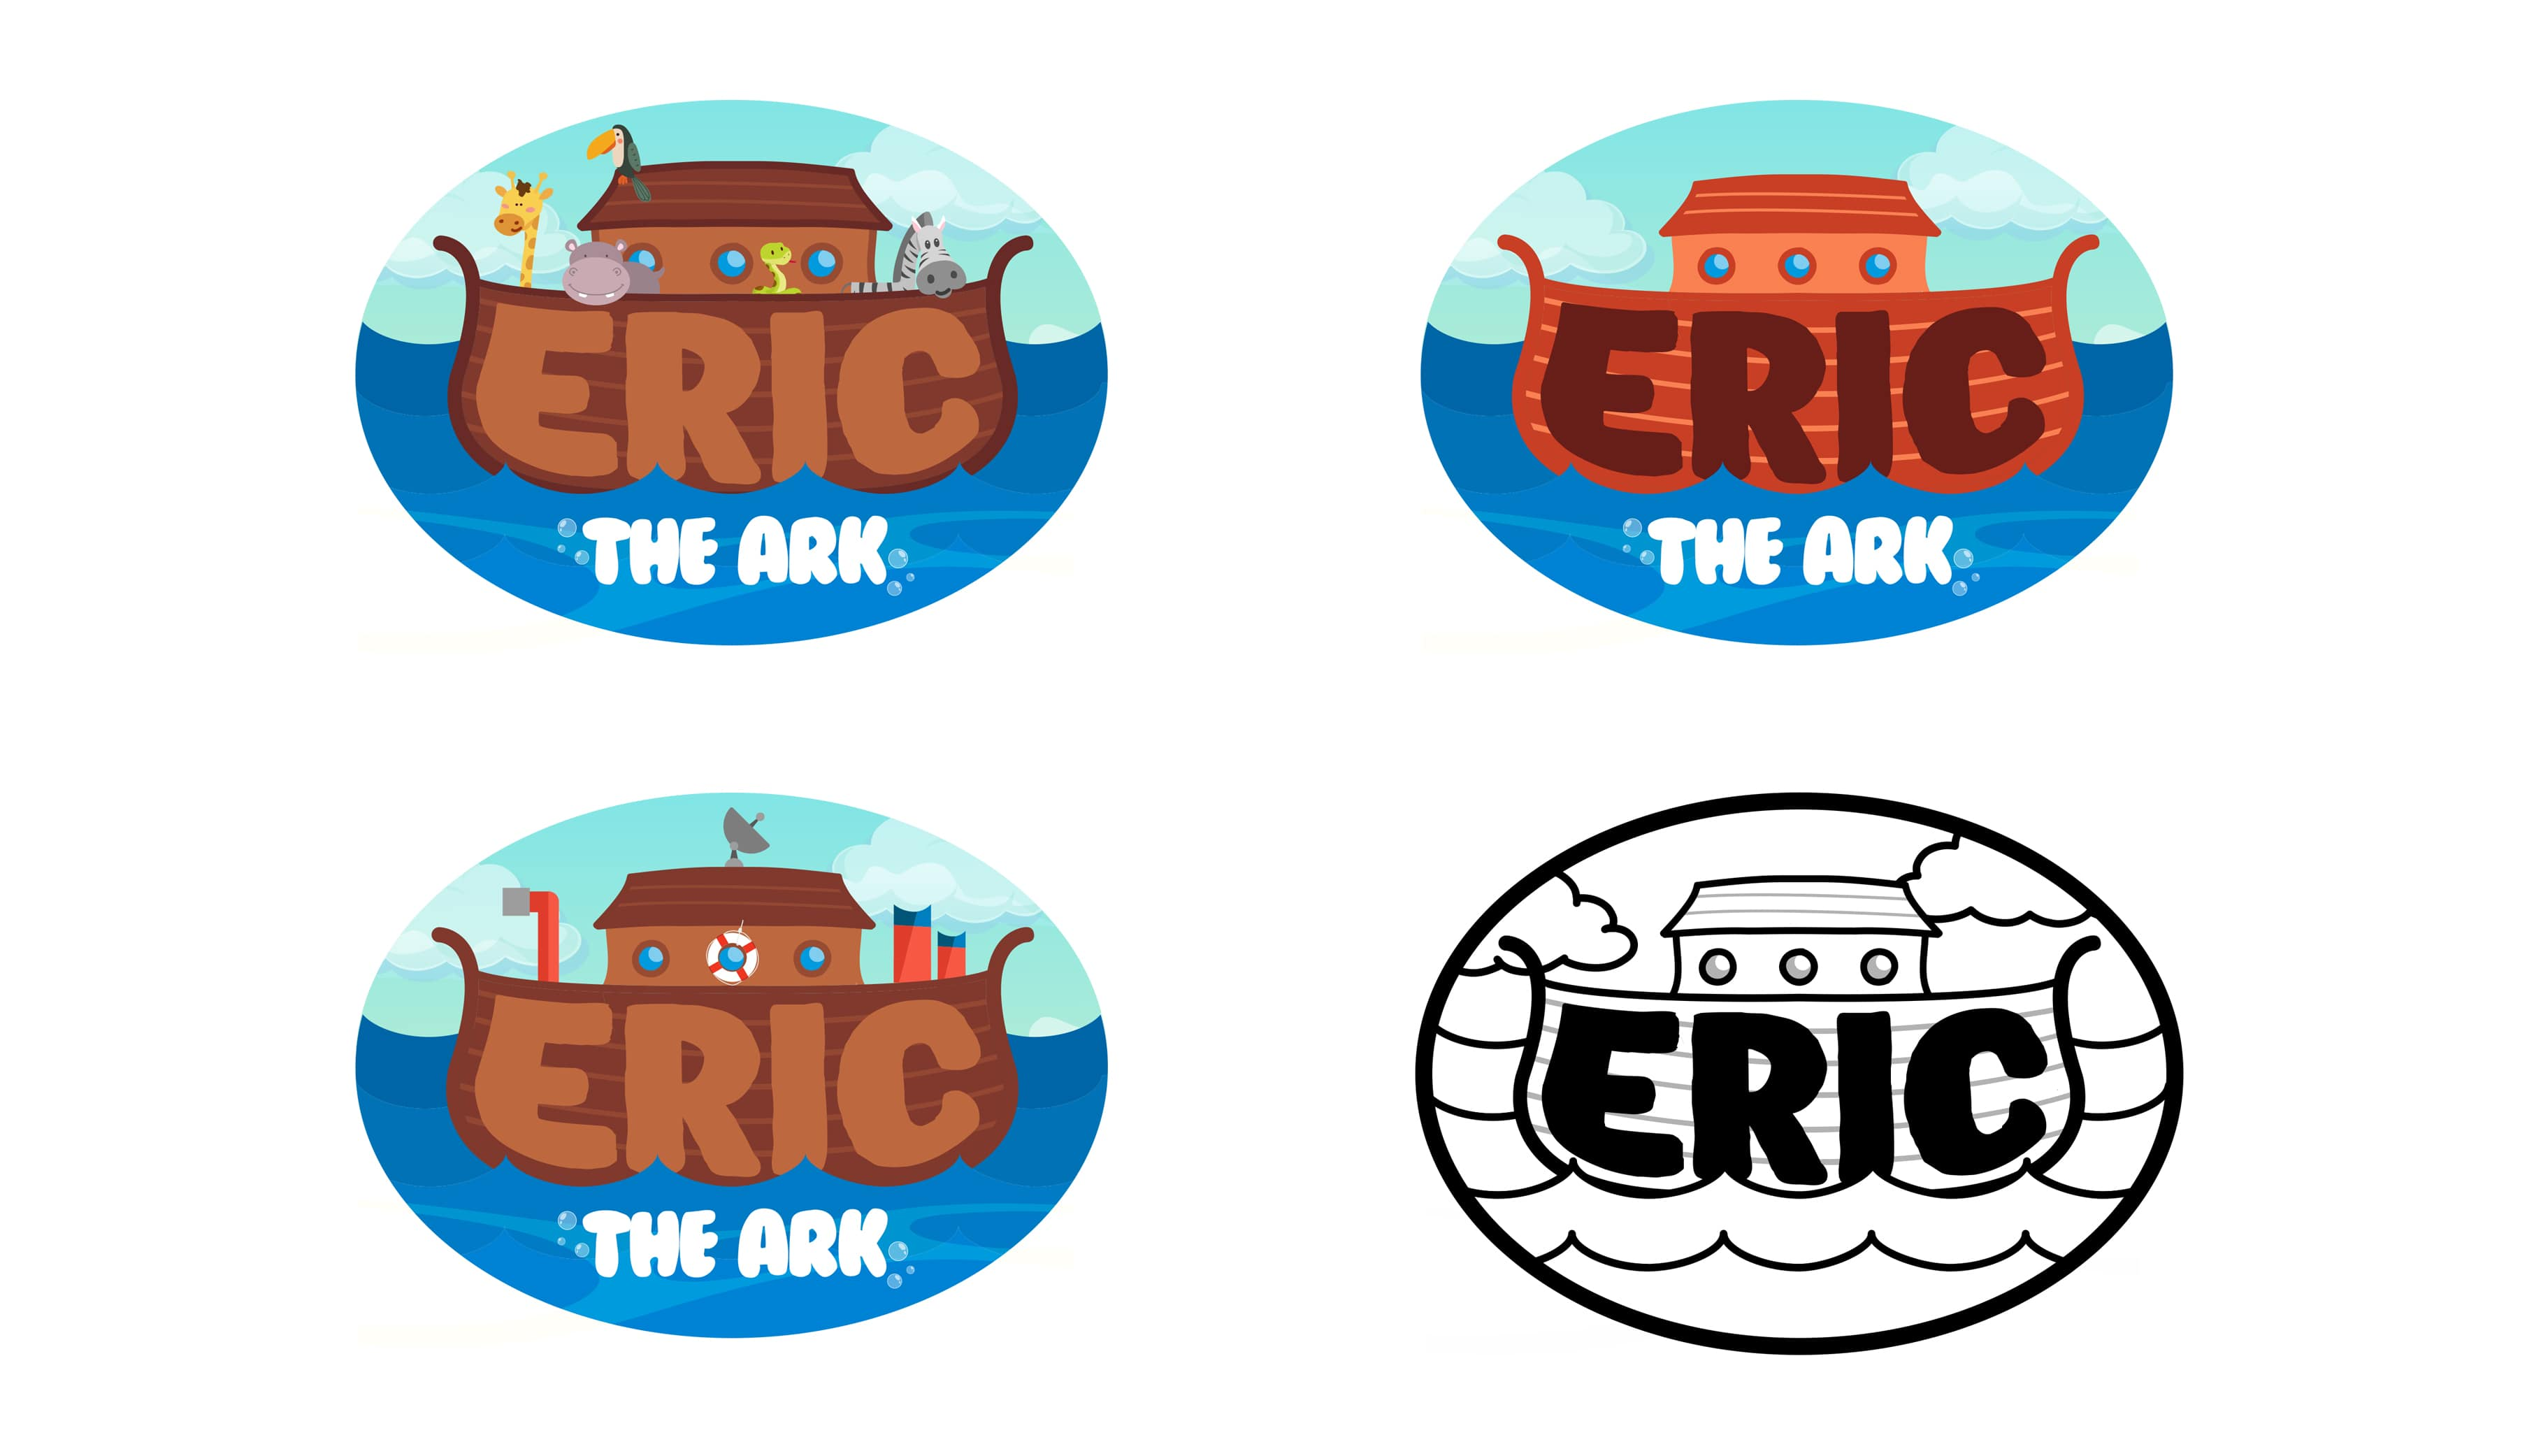 Eric The Ark - Drafts